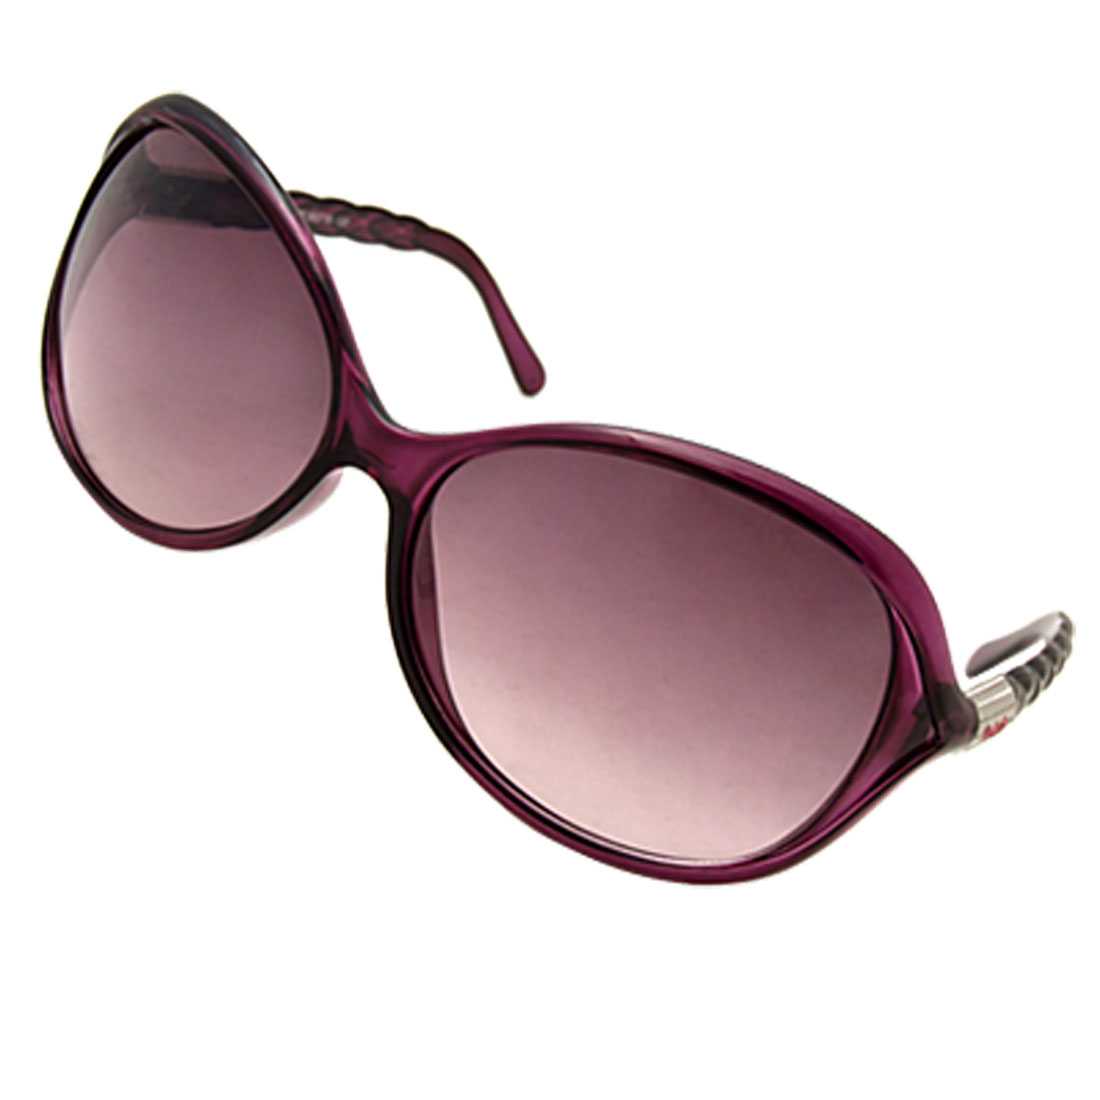 Stylish Big Lens Plastic Ladies' Sunglasses Eyewear Purple